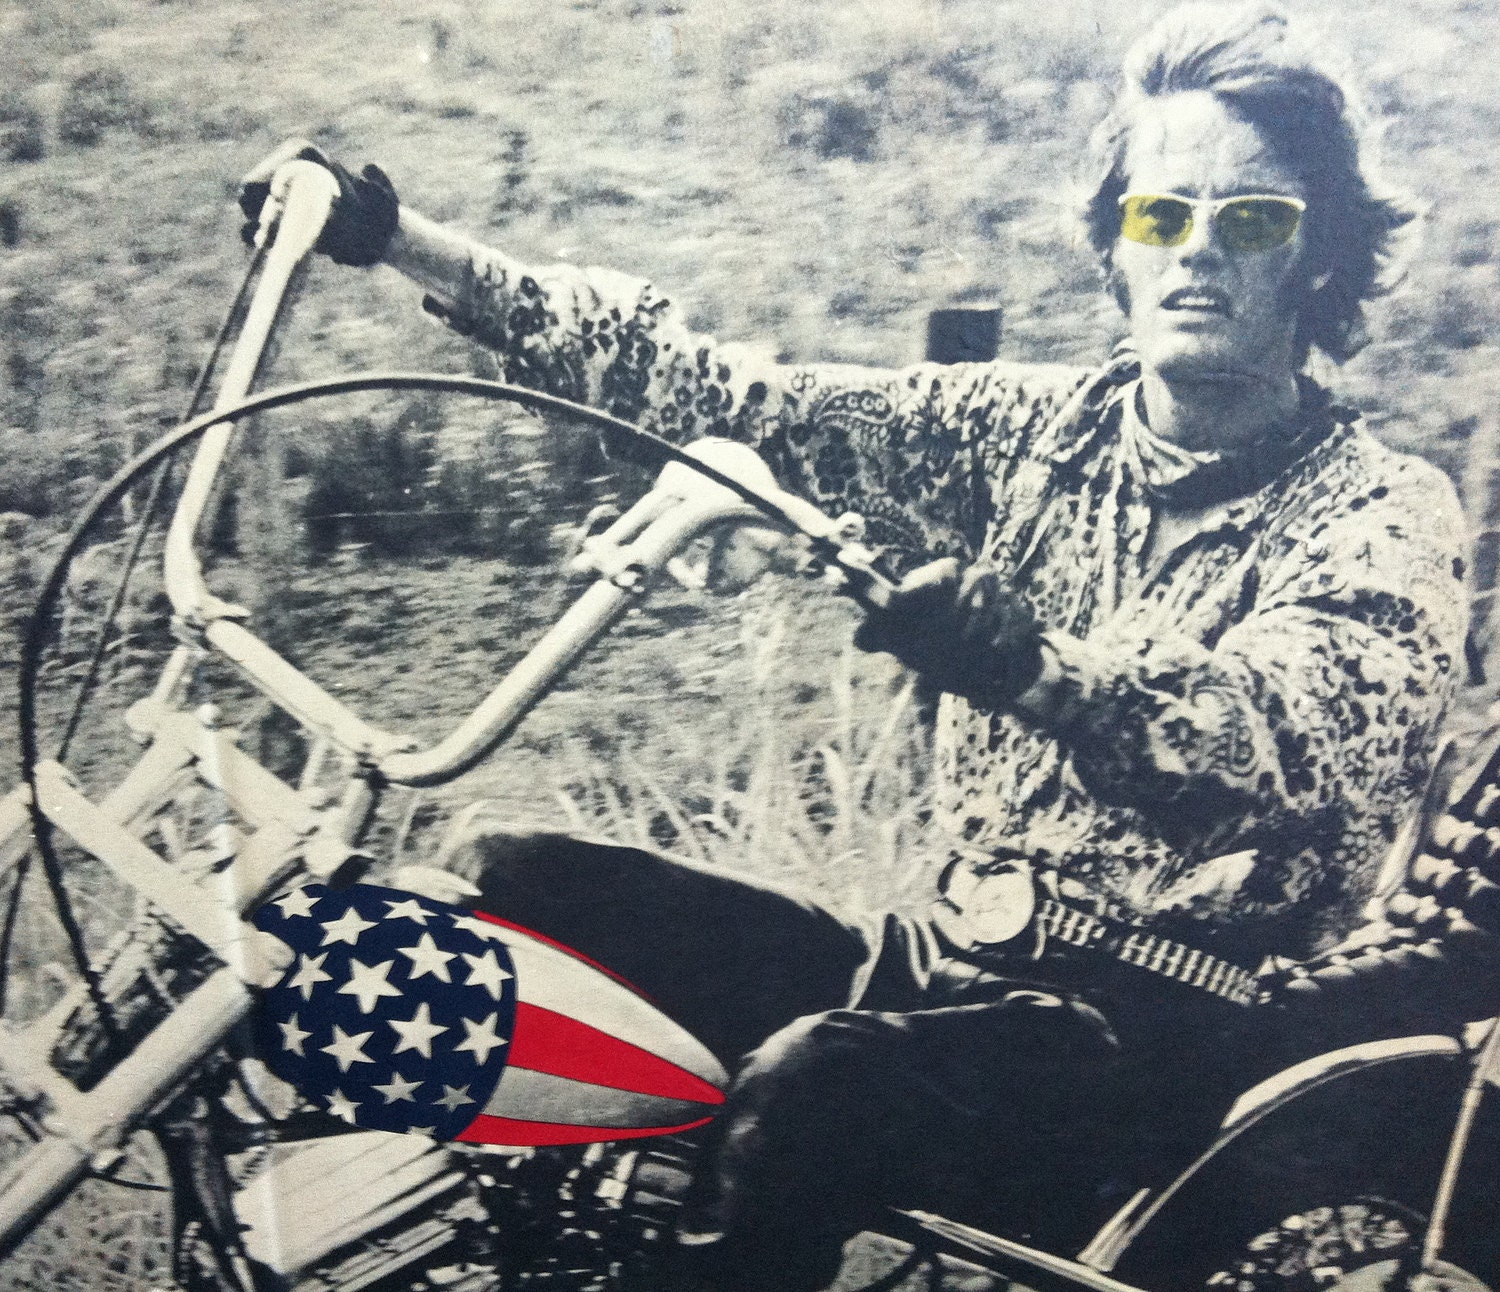 easy rider original peter fonda poster from the 1960s. Black Bedroom Furniture Sets. Home Design Ideas